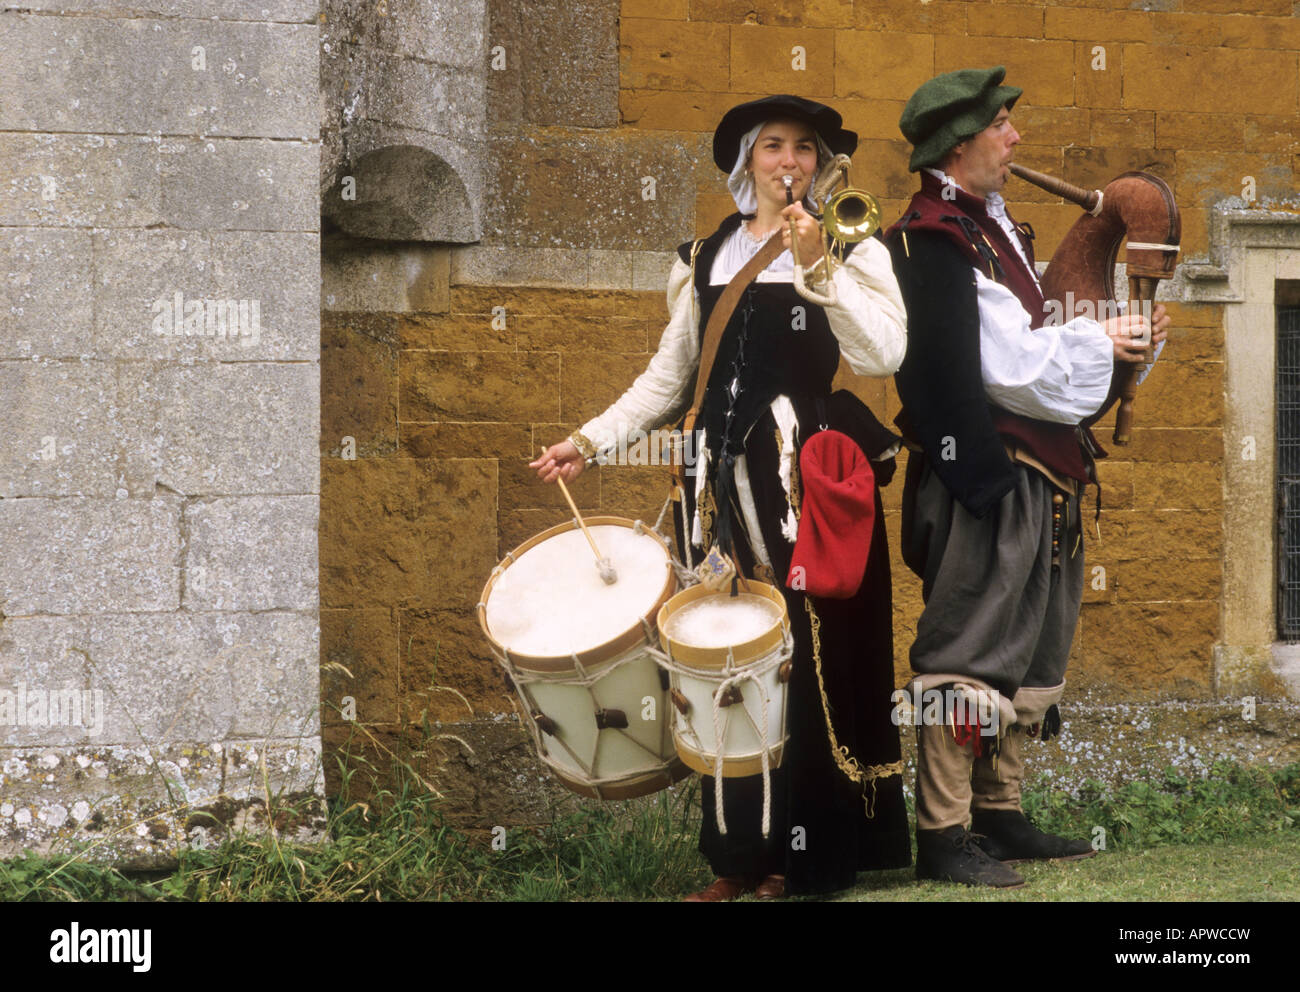 Musicians Hautbois Elizabethan re enactment 16th century English history music instruments musical players drums - Stock Image